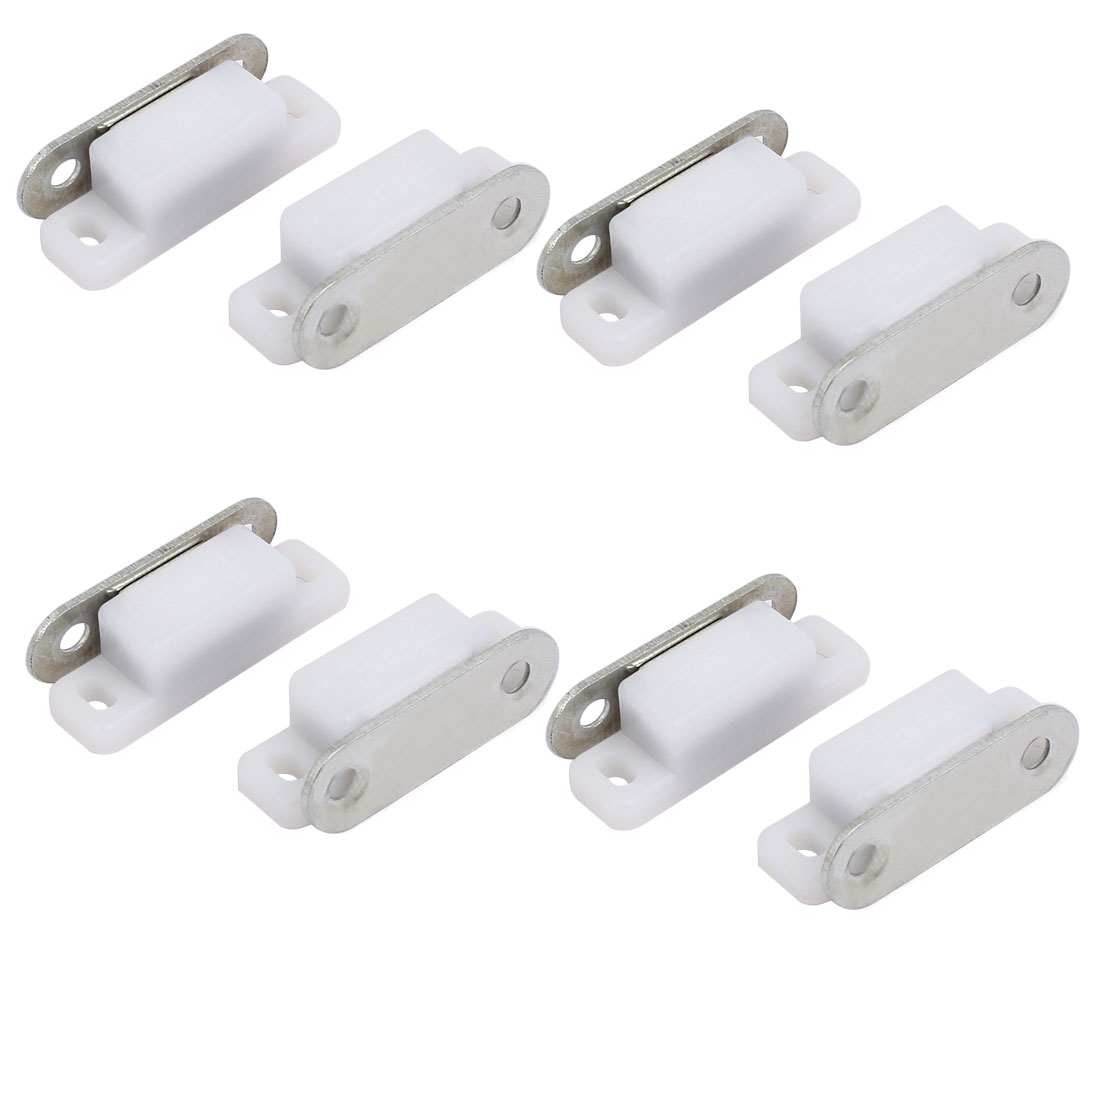 Wardrobe Door ABS Plastic Shell Magnetic Catch Latch White 28mm Length 8pcs